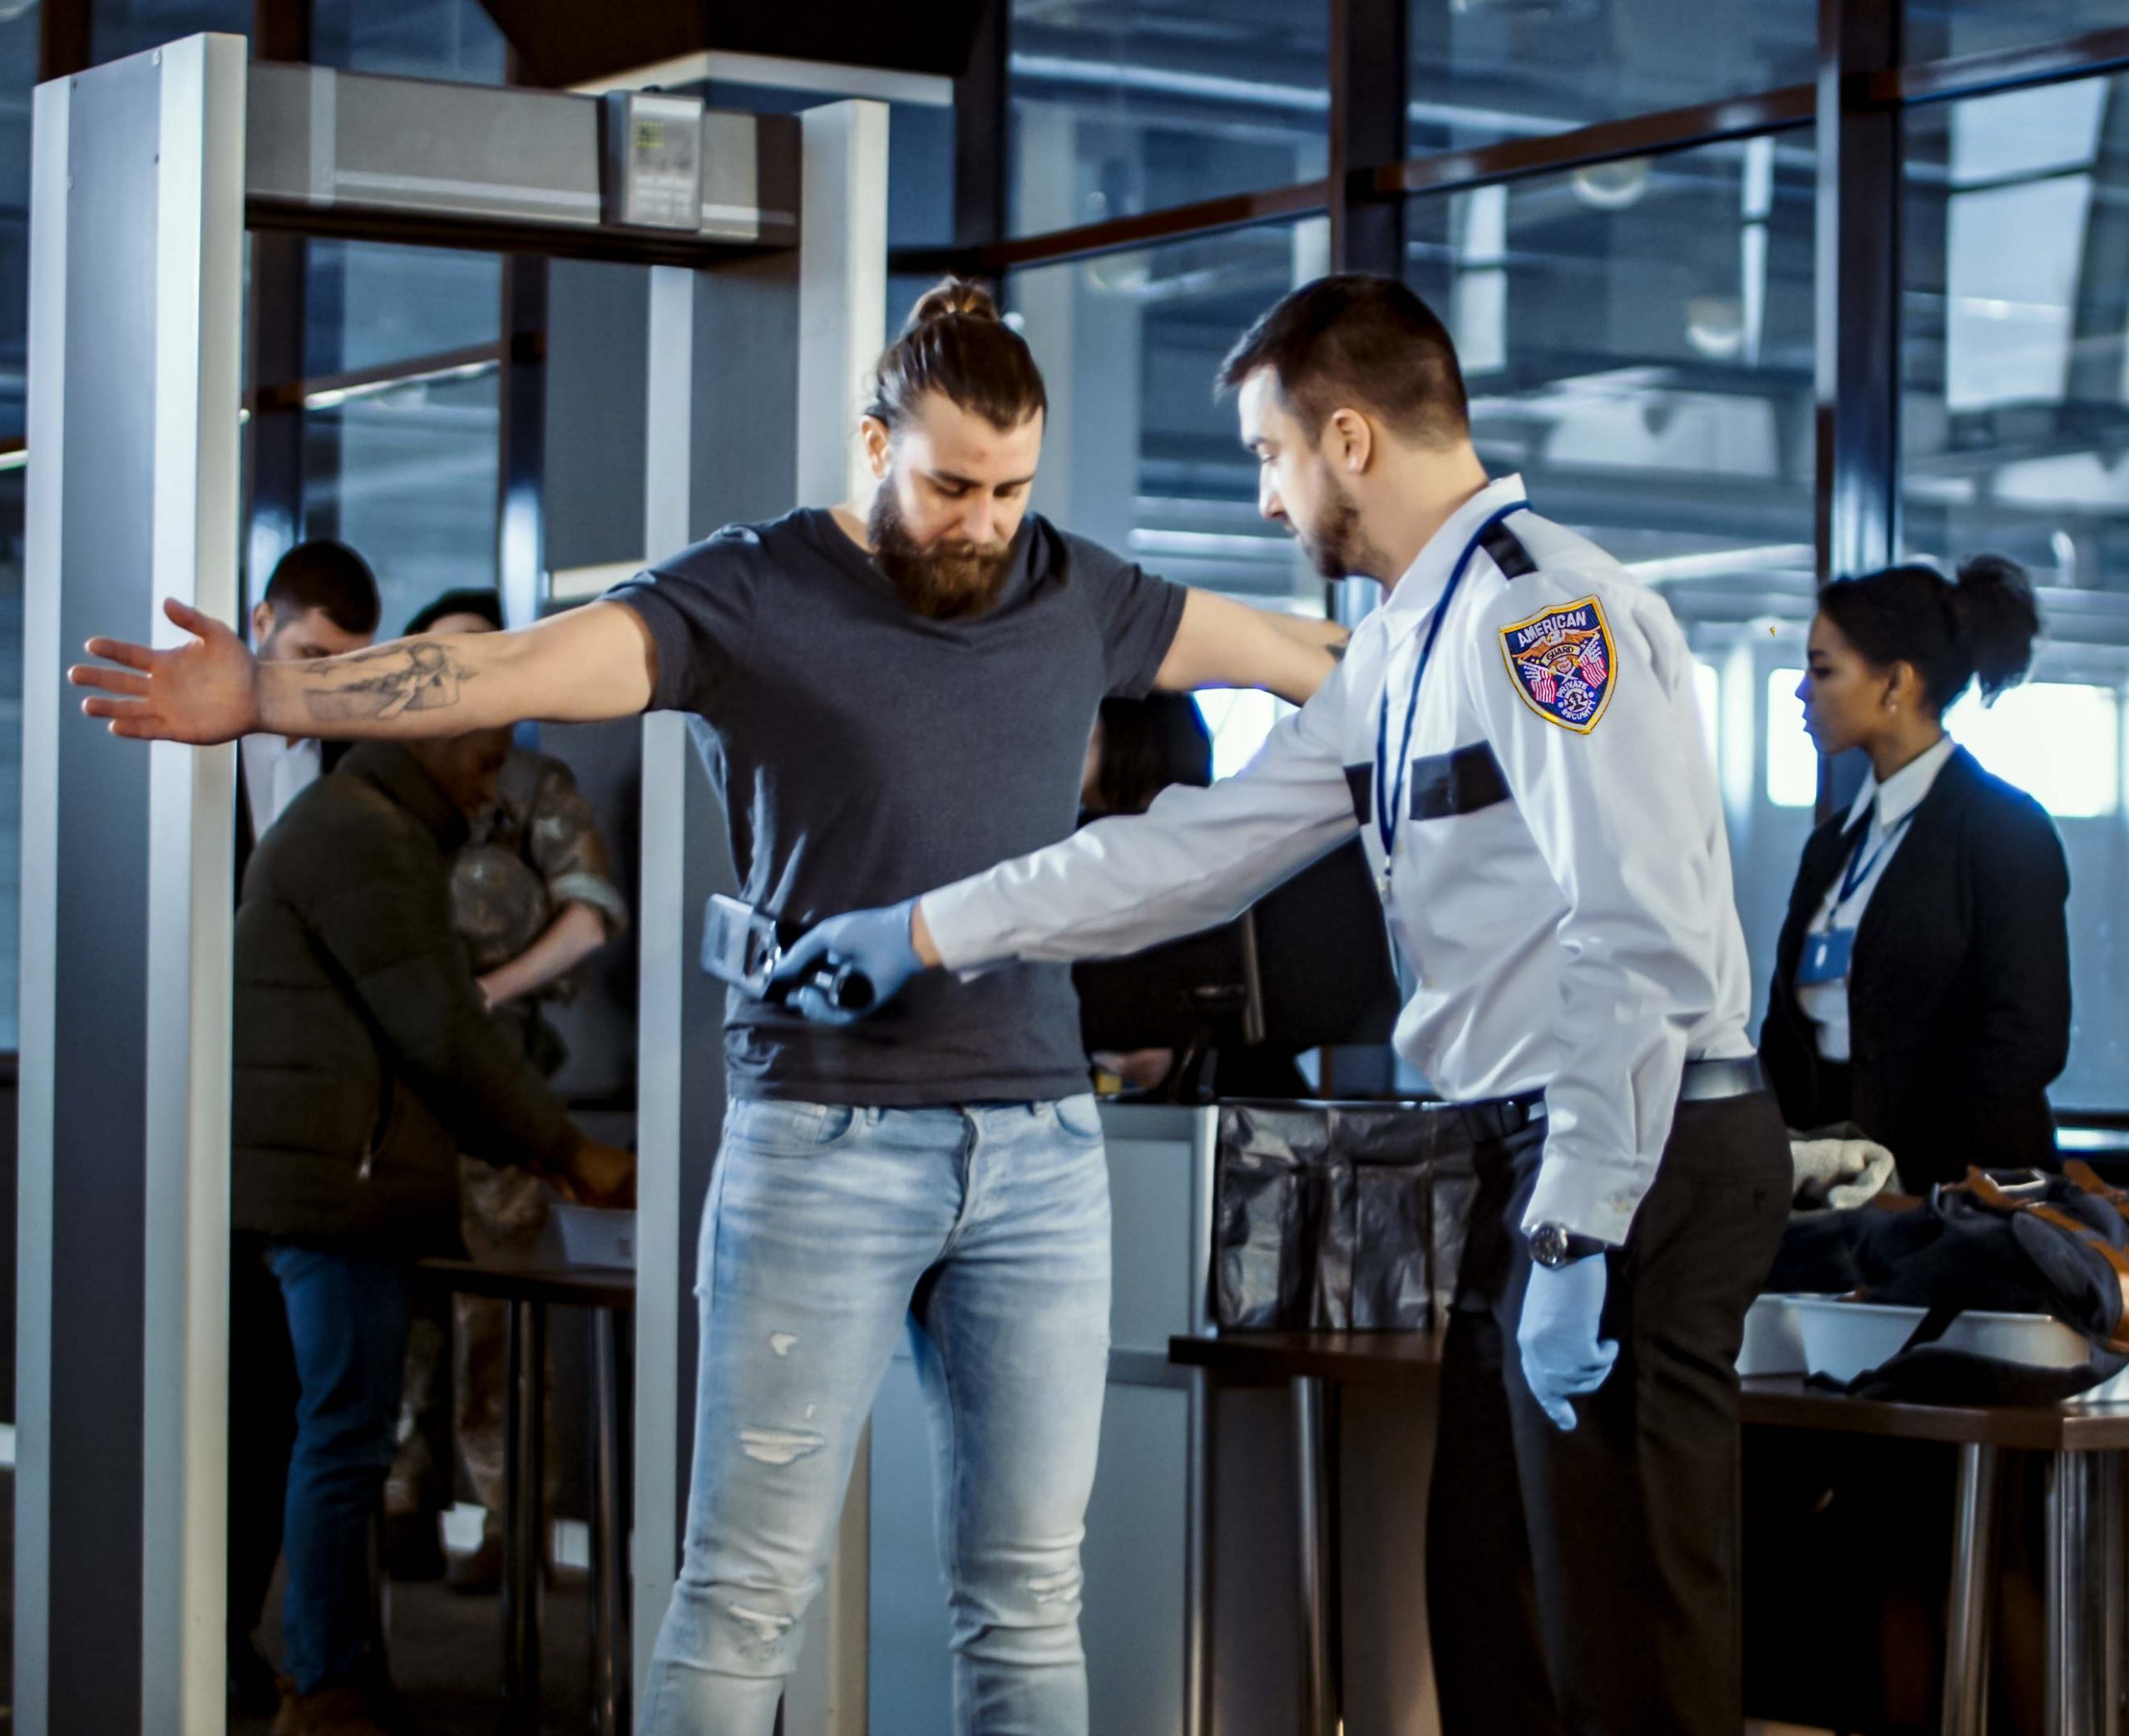 What are the reasons to hire security guard for your protection?